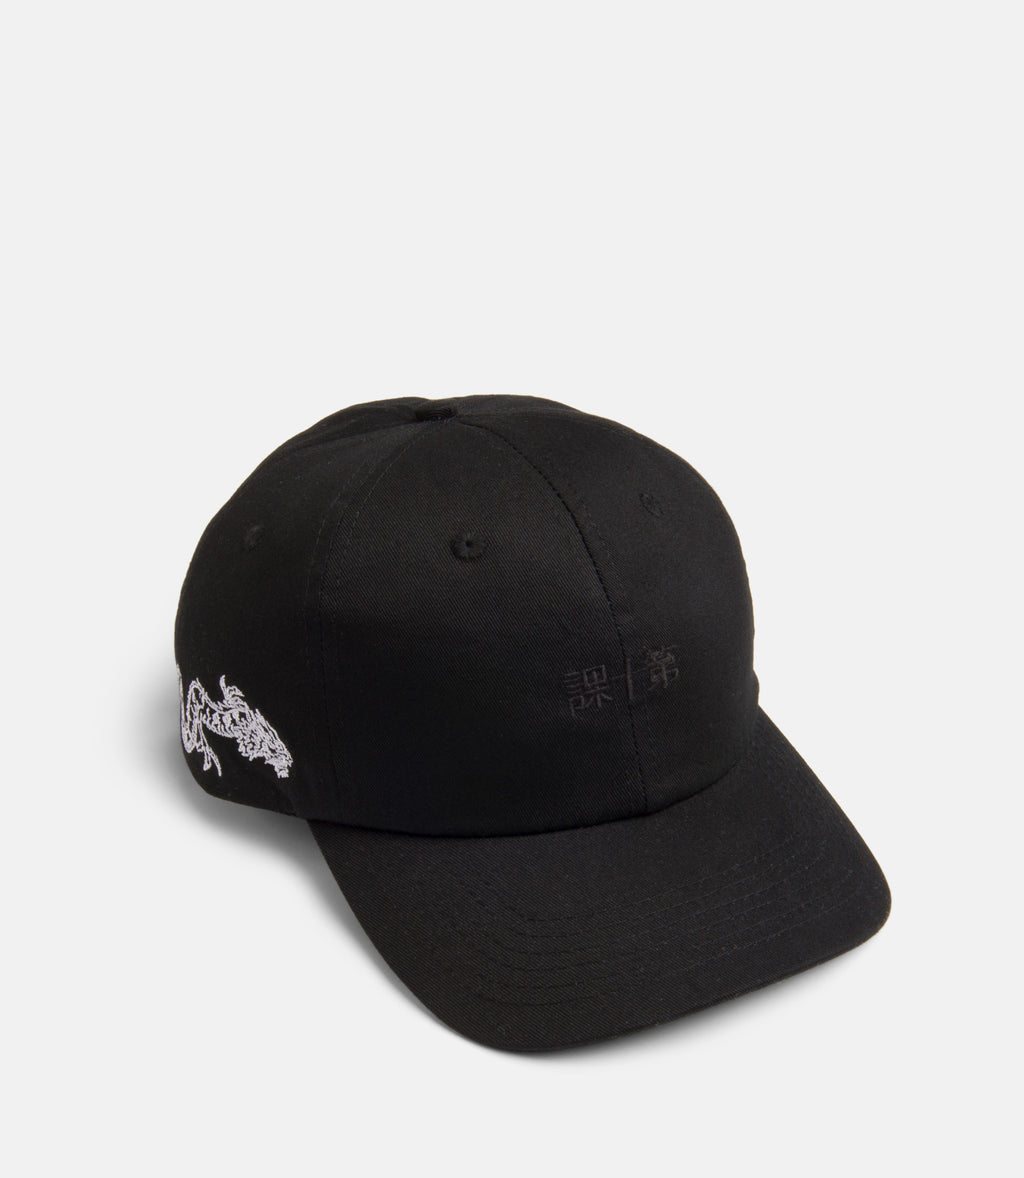 10Deep - Dragon Kanji Hat, Black - The Giant Peach